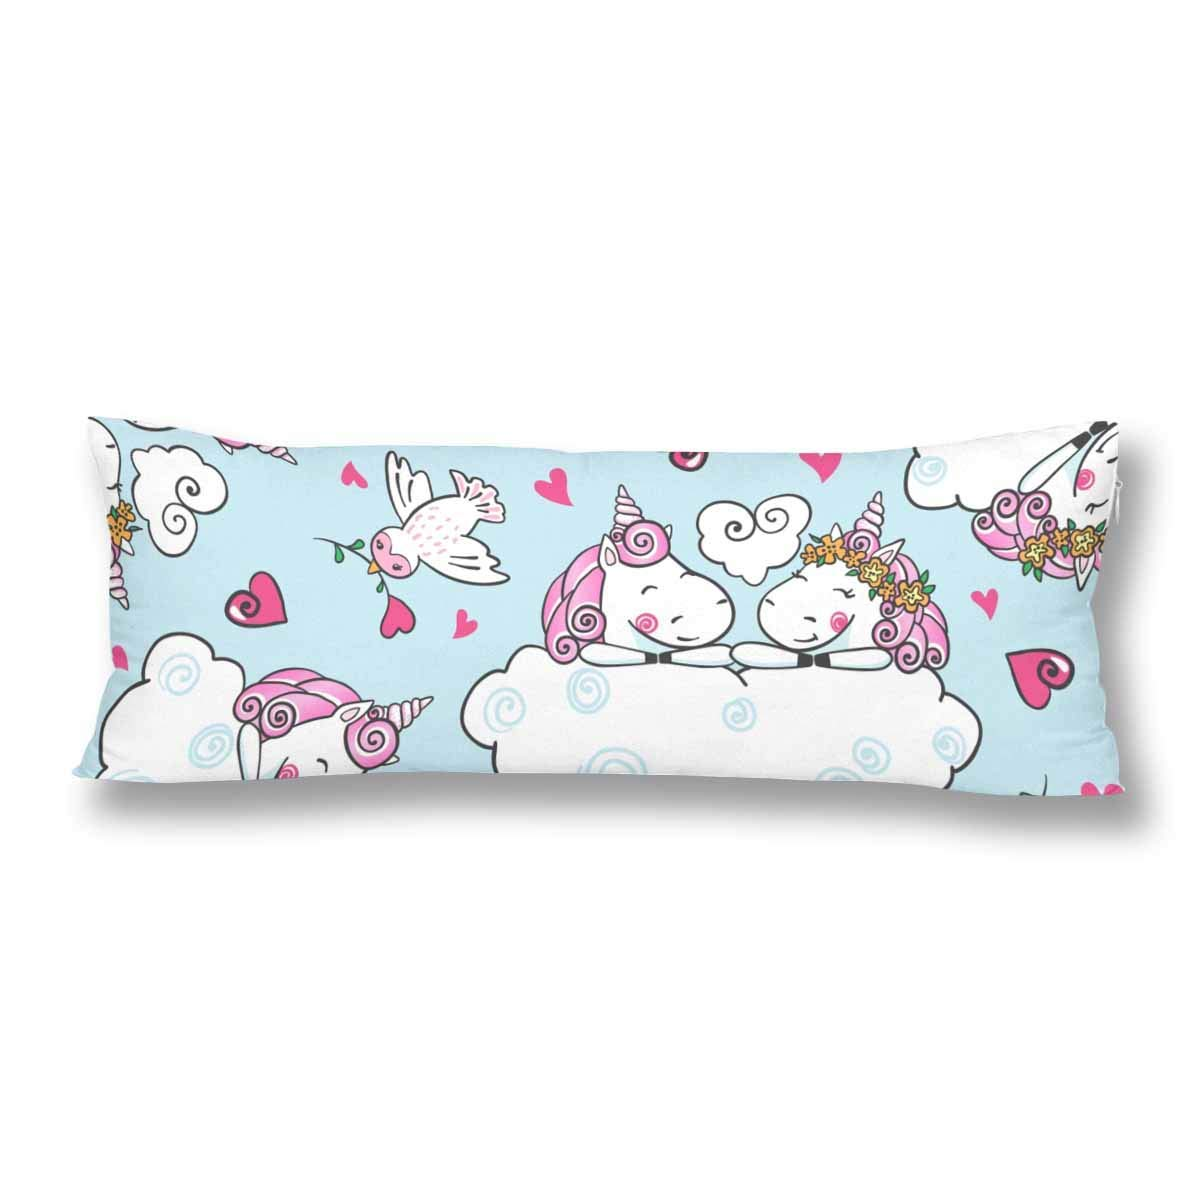 GCKG Cute Unicorn Falling in Love Heart Cartoon Style Pillow Covers Pillowcase 20x60 inches, Body Pillow Case Protector - image 2 de 2